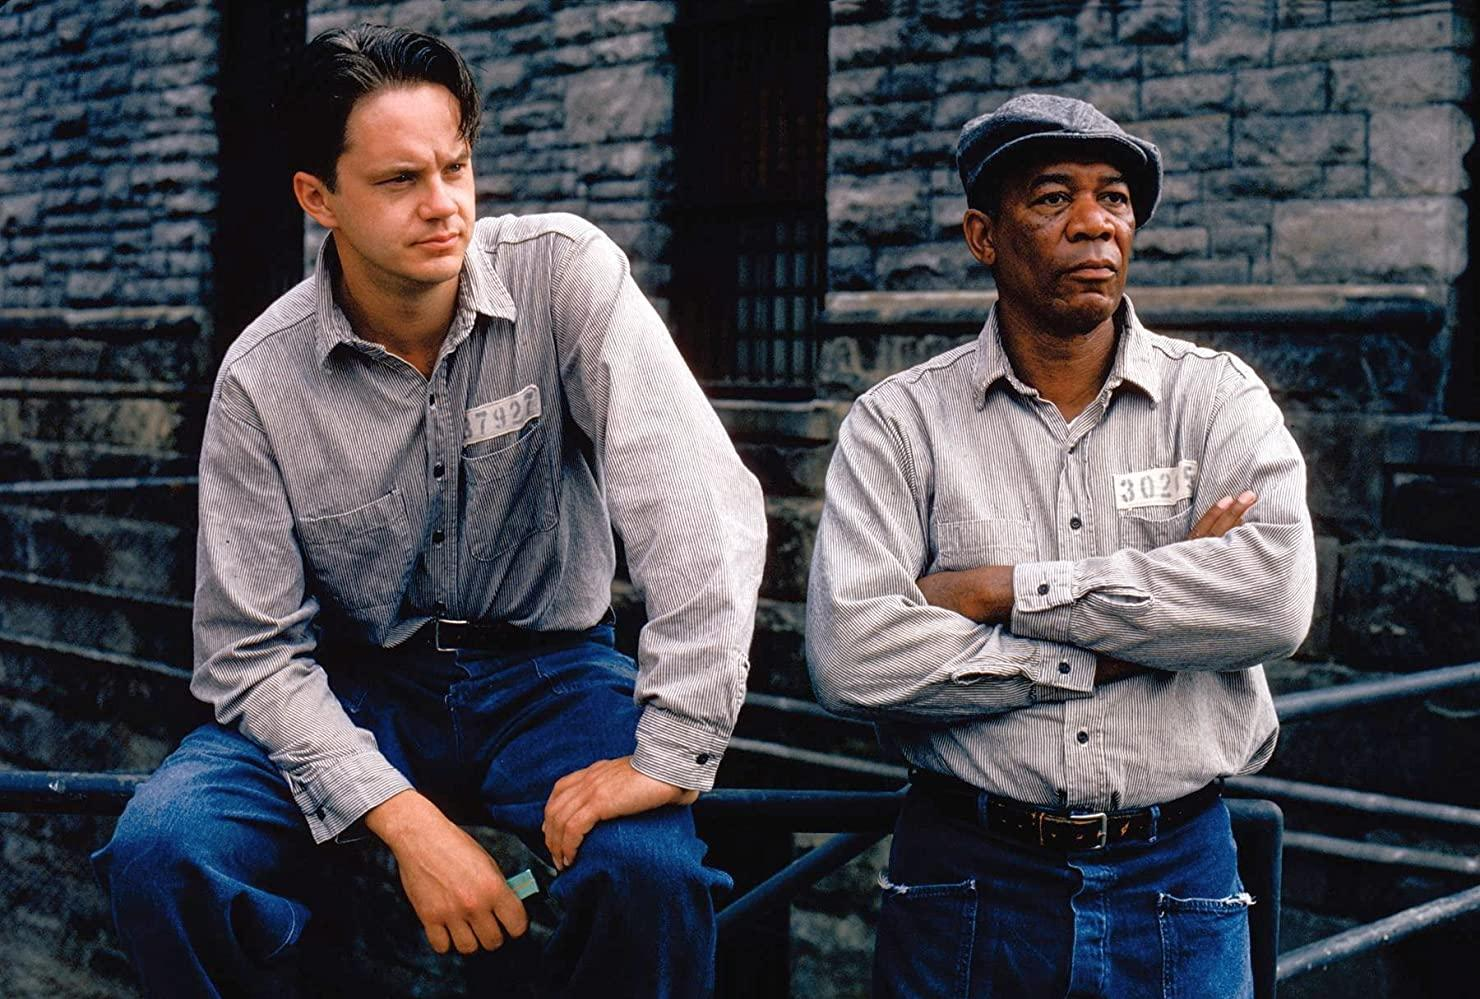 مشاهدة فيلم The Shawshank Redemption (1994) مترجم HD اون لاين